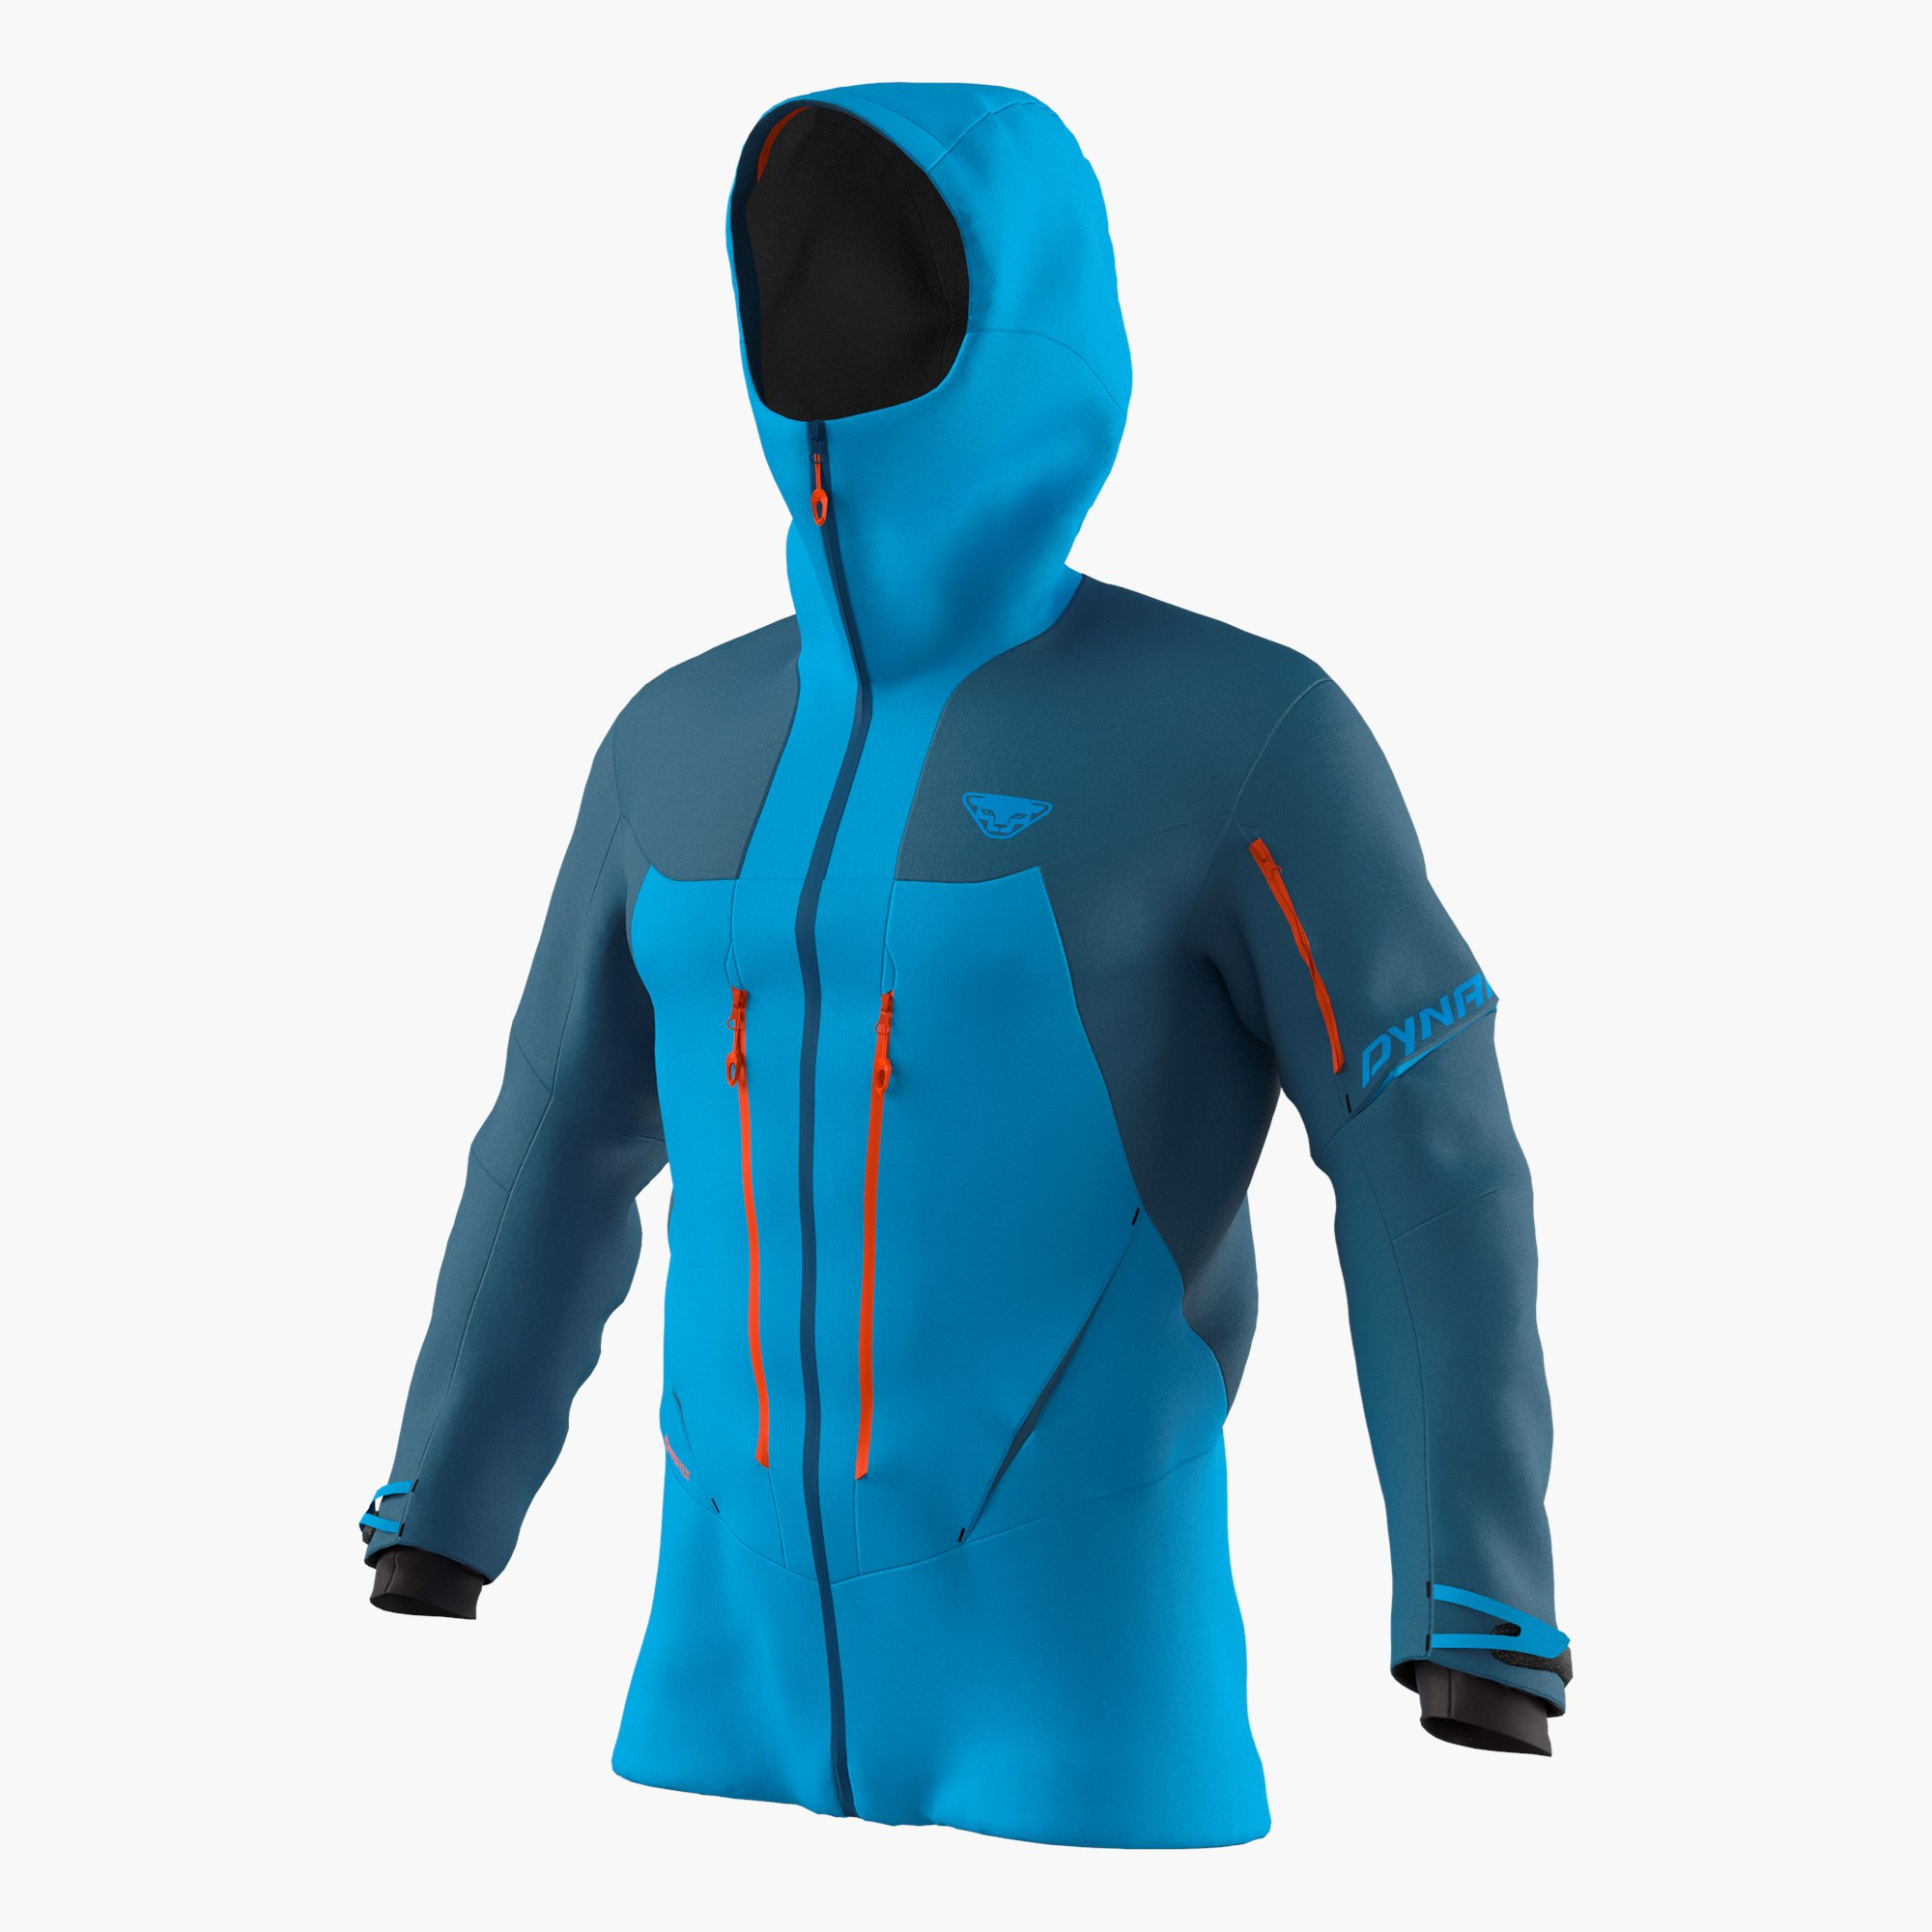 Hardshell jacket men's ski touring and trail running | Dynafit